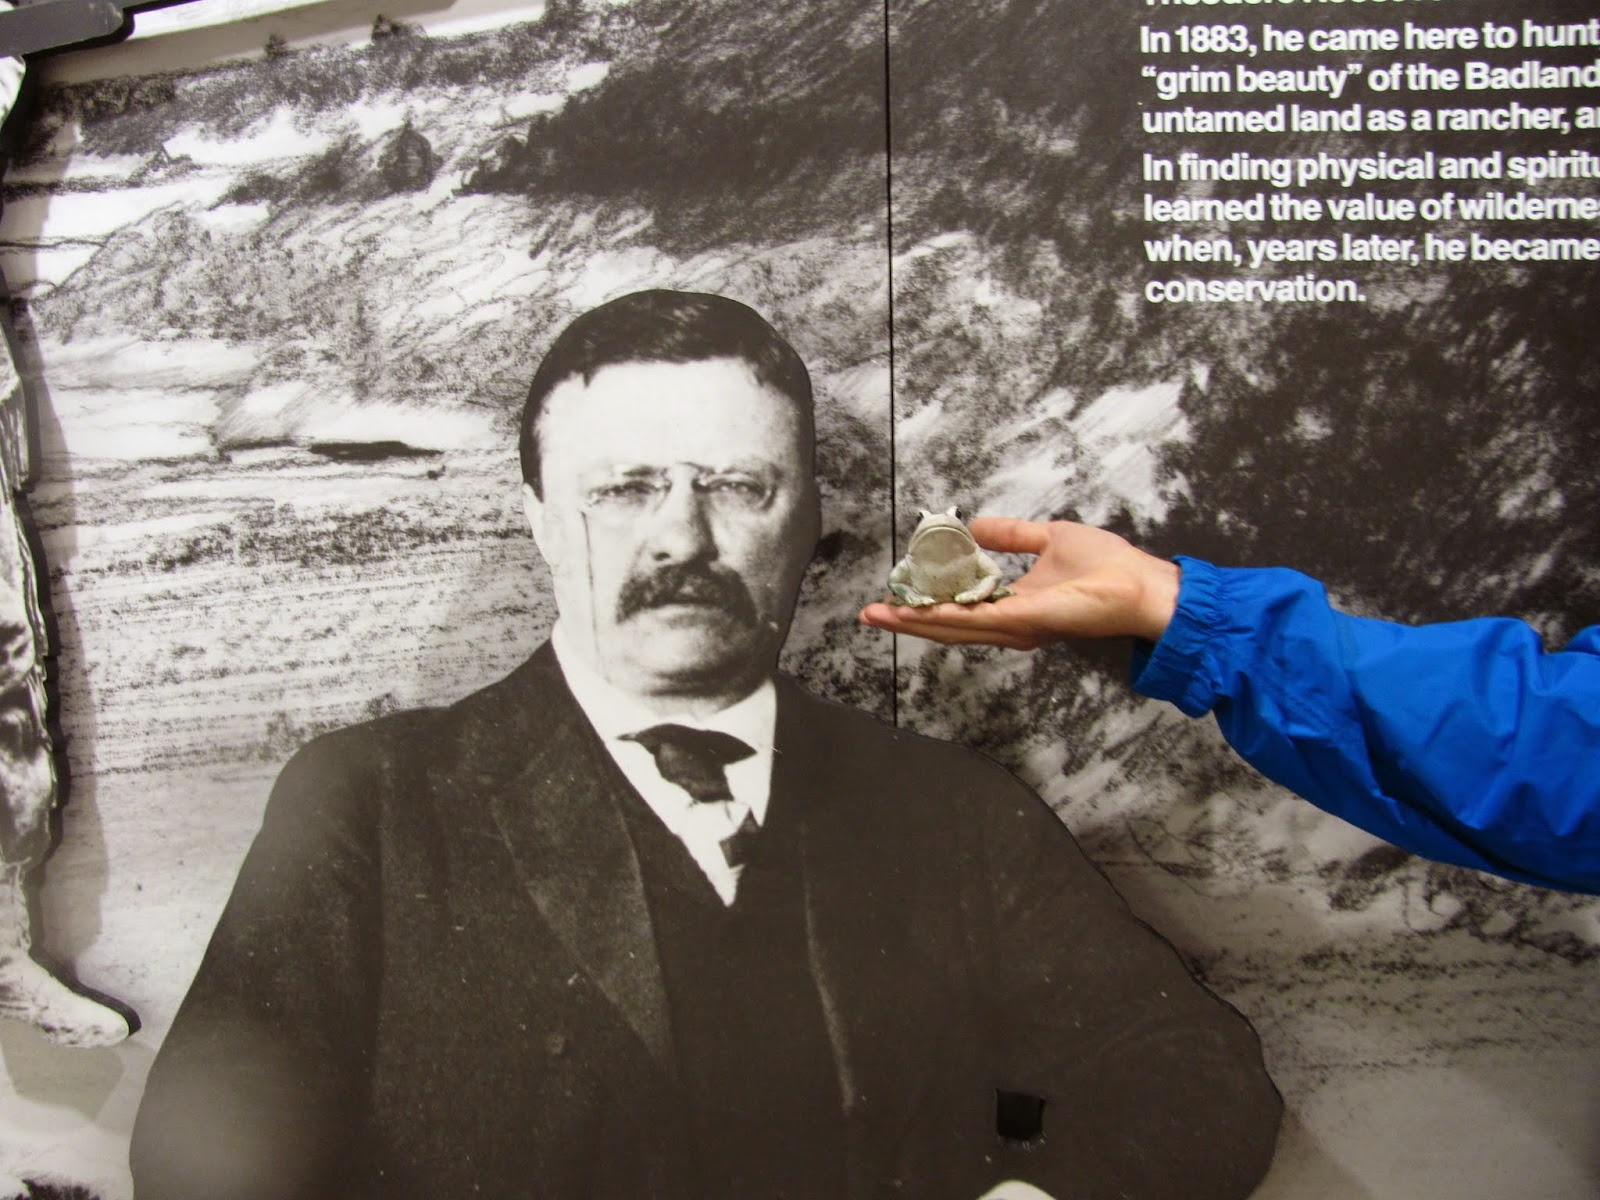 Frog poses in front of a figure of Theodore Roosevelt at Theodore Roosevelt National Park in North Dakota